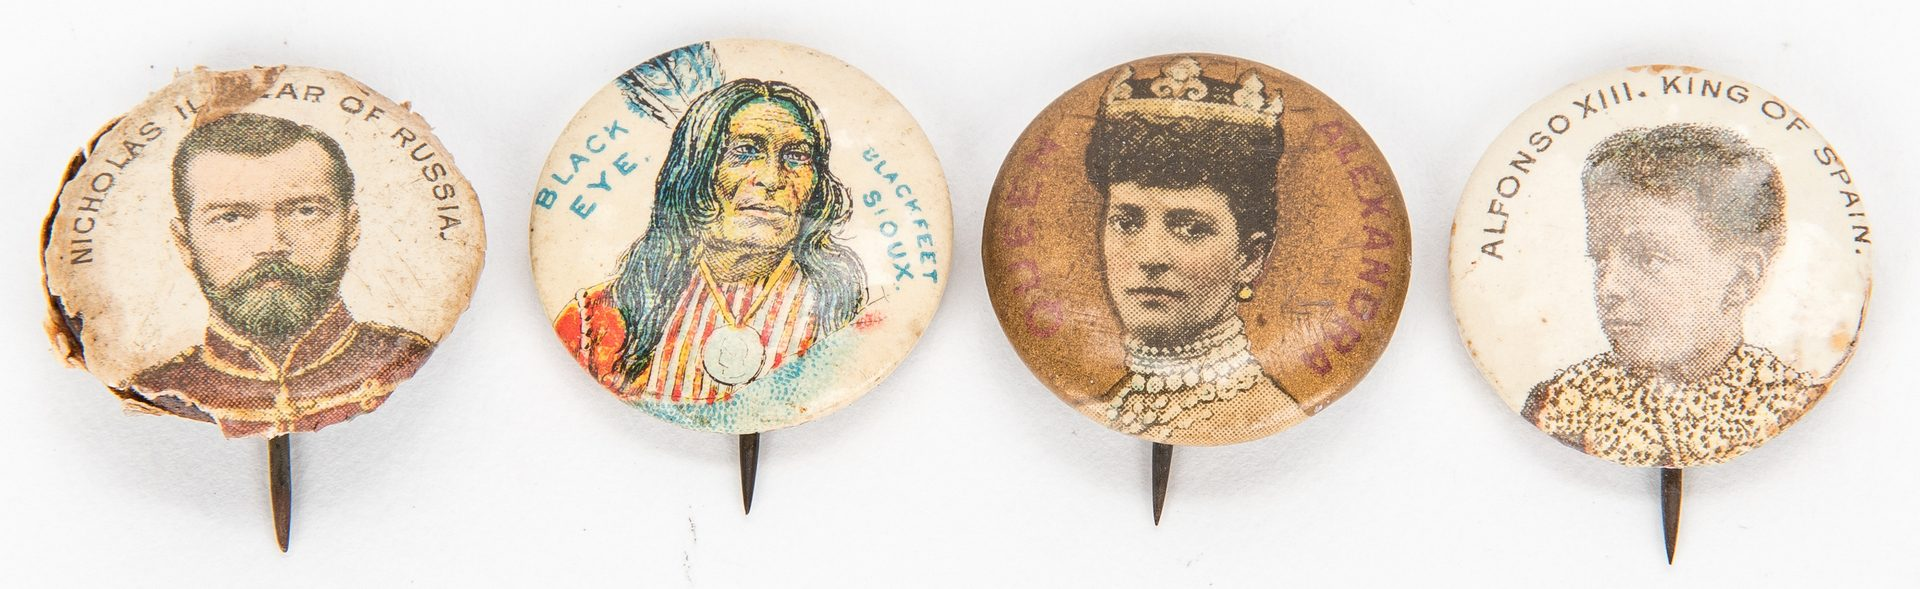 Lot 720: 86 Early Pinback Buttons, Incl. Rare Speares Auto Oils, Union, Strike & Local Political Buttons